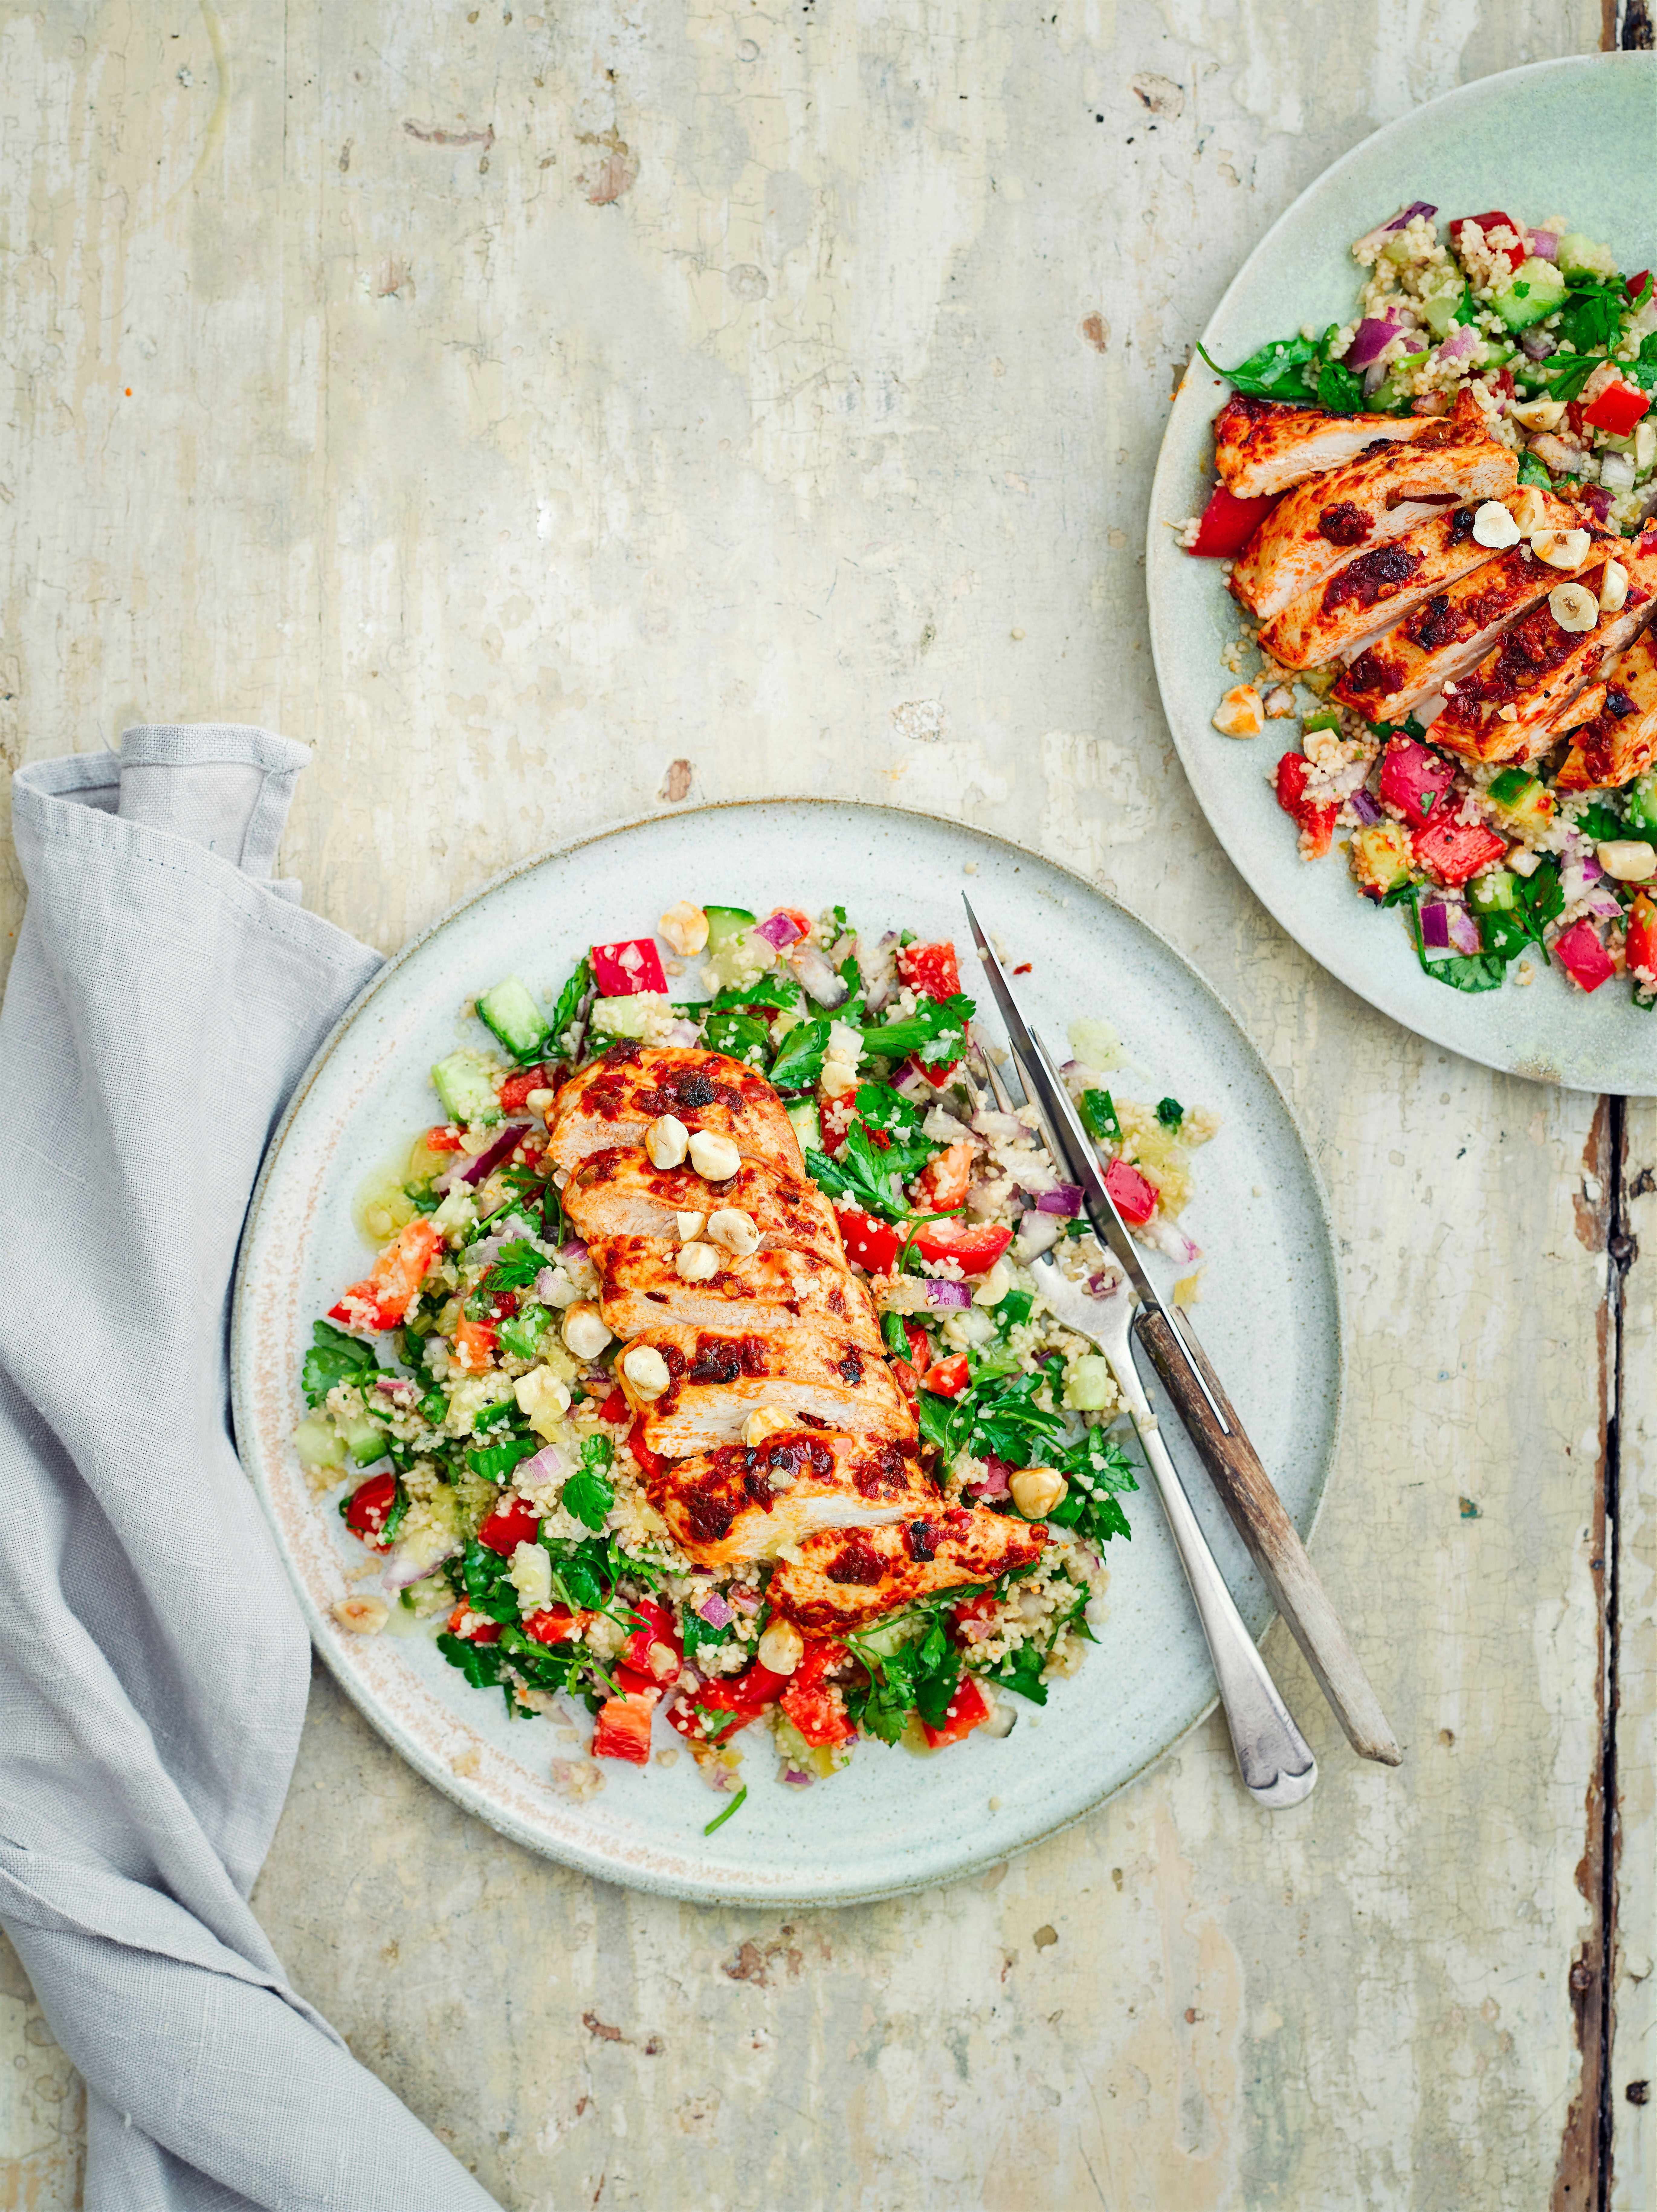 Harissa Chicken Recipe with Couscous Salad